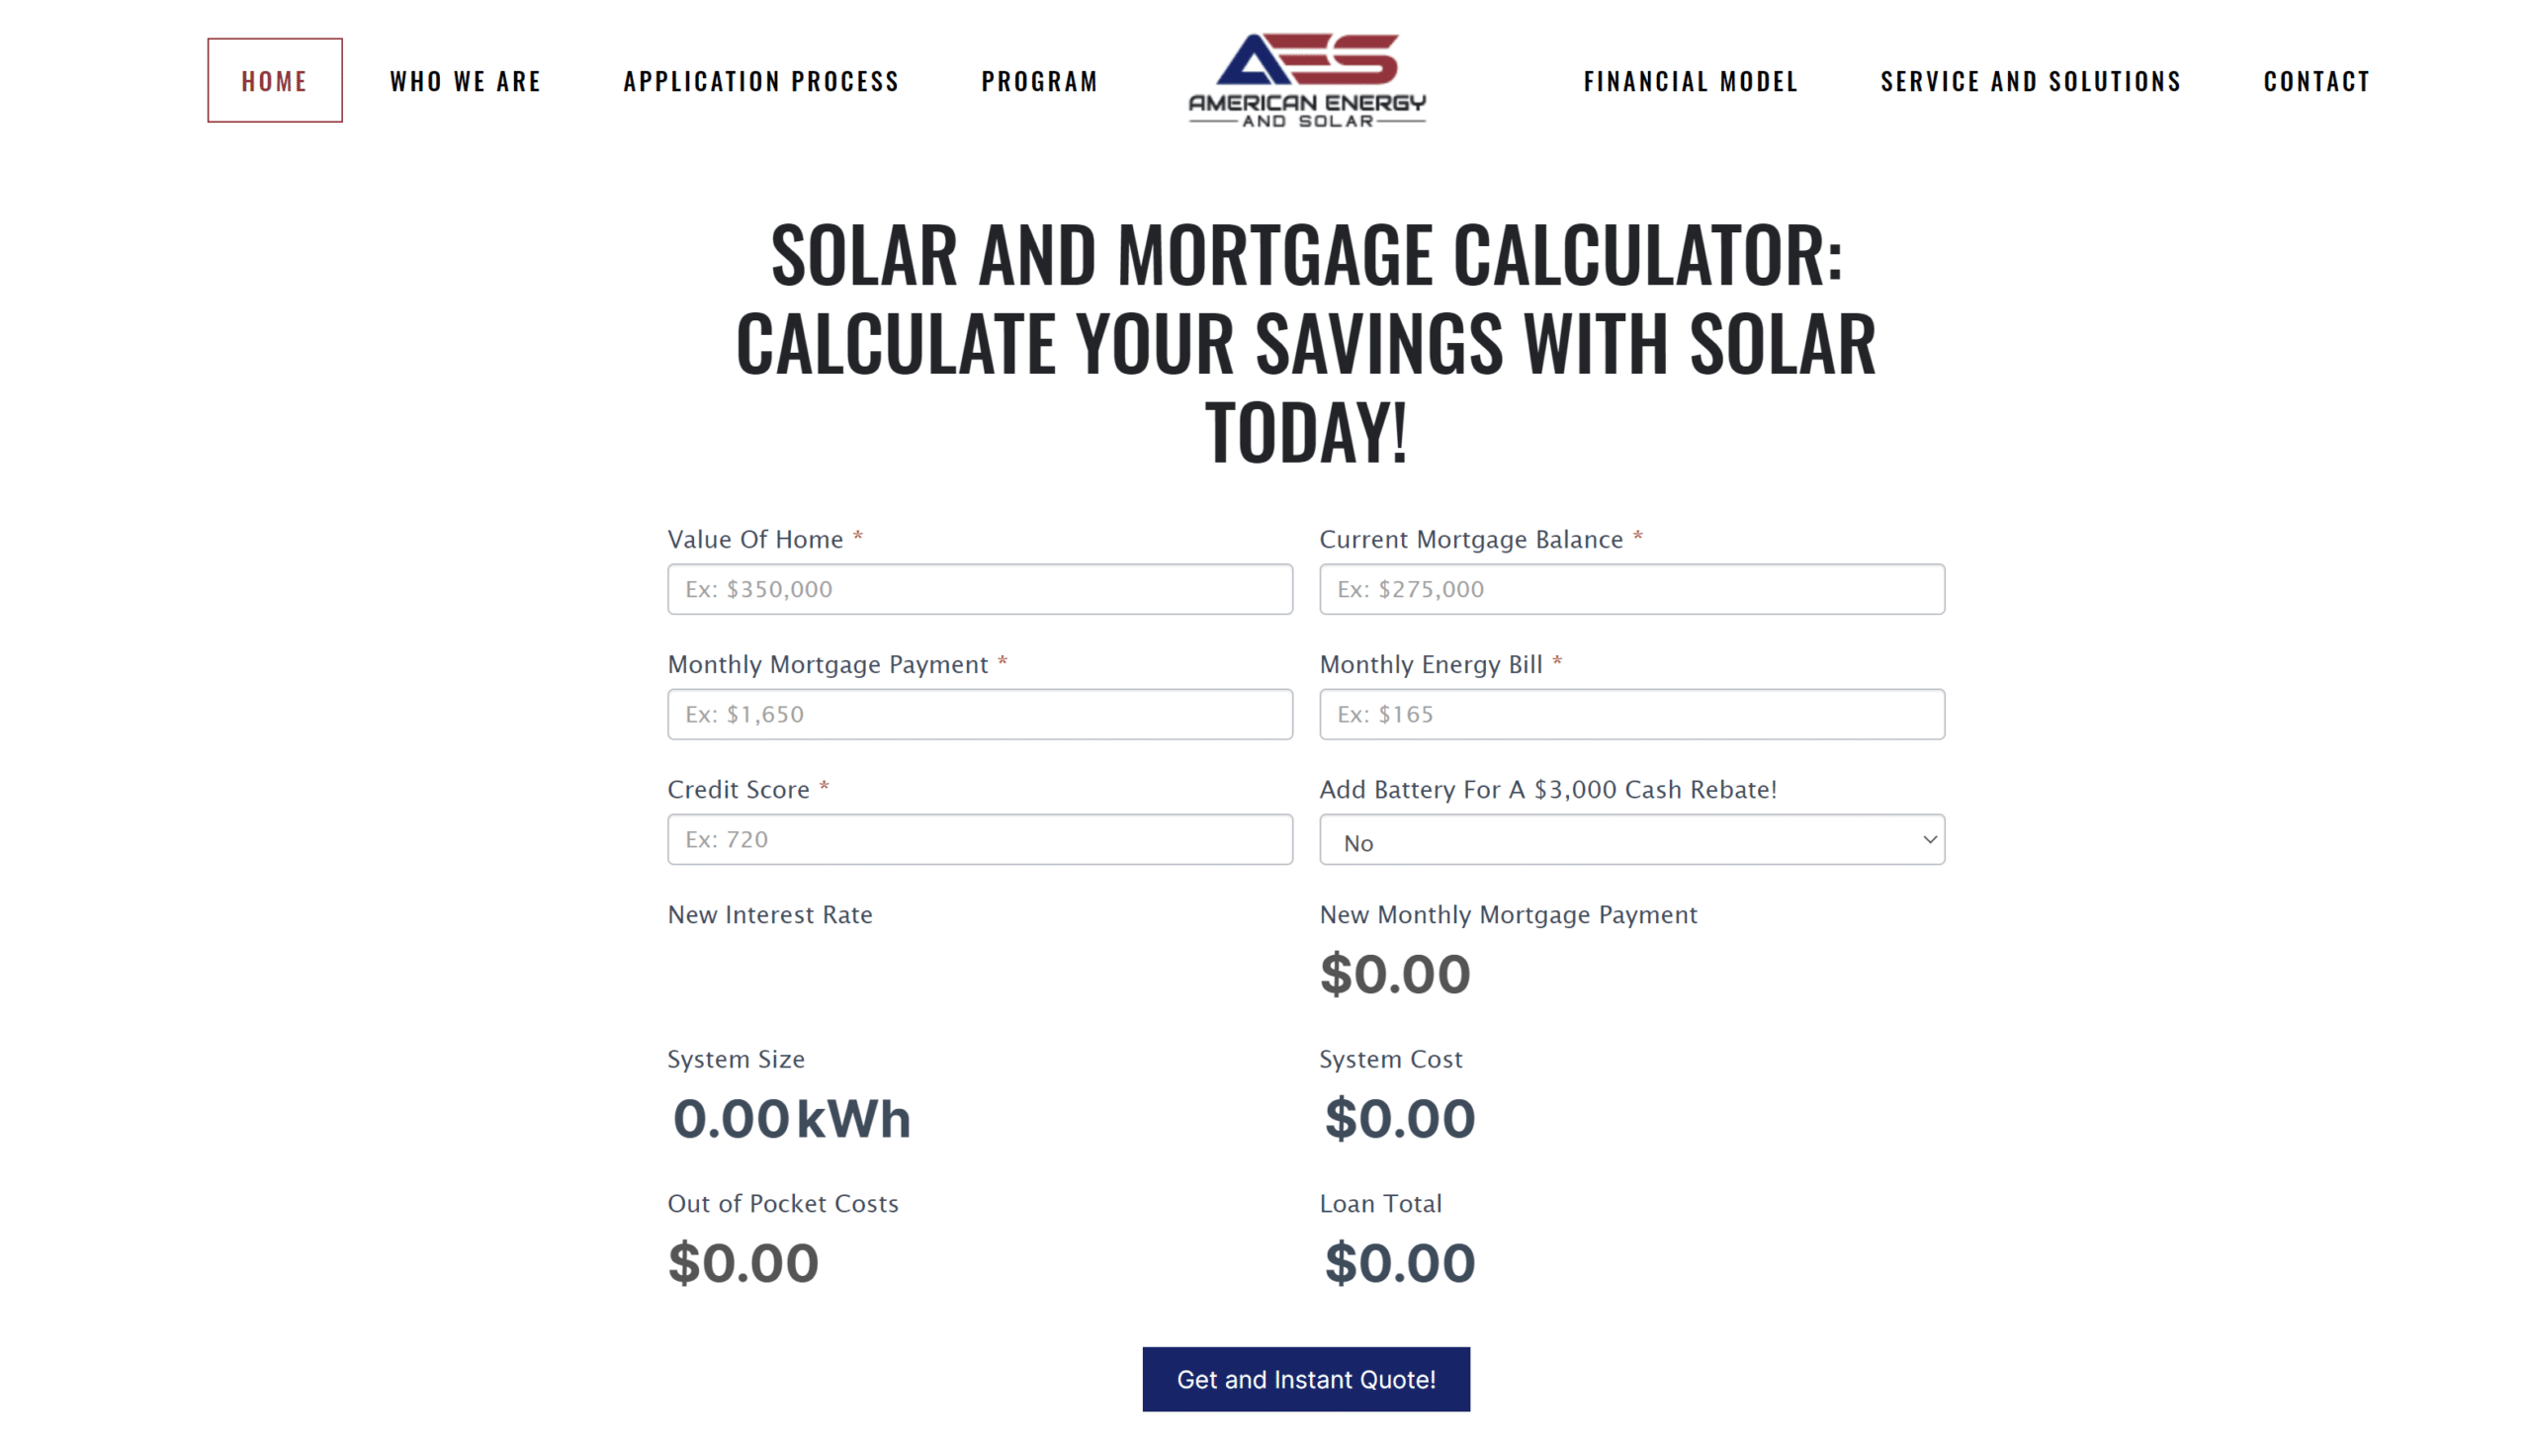 screenshot-americanenergyandsolar.com-2020.11.11-16_18_23